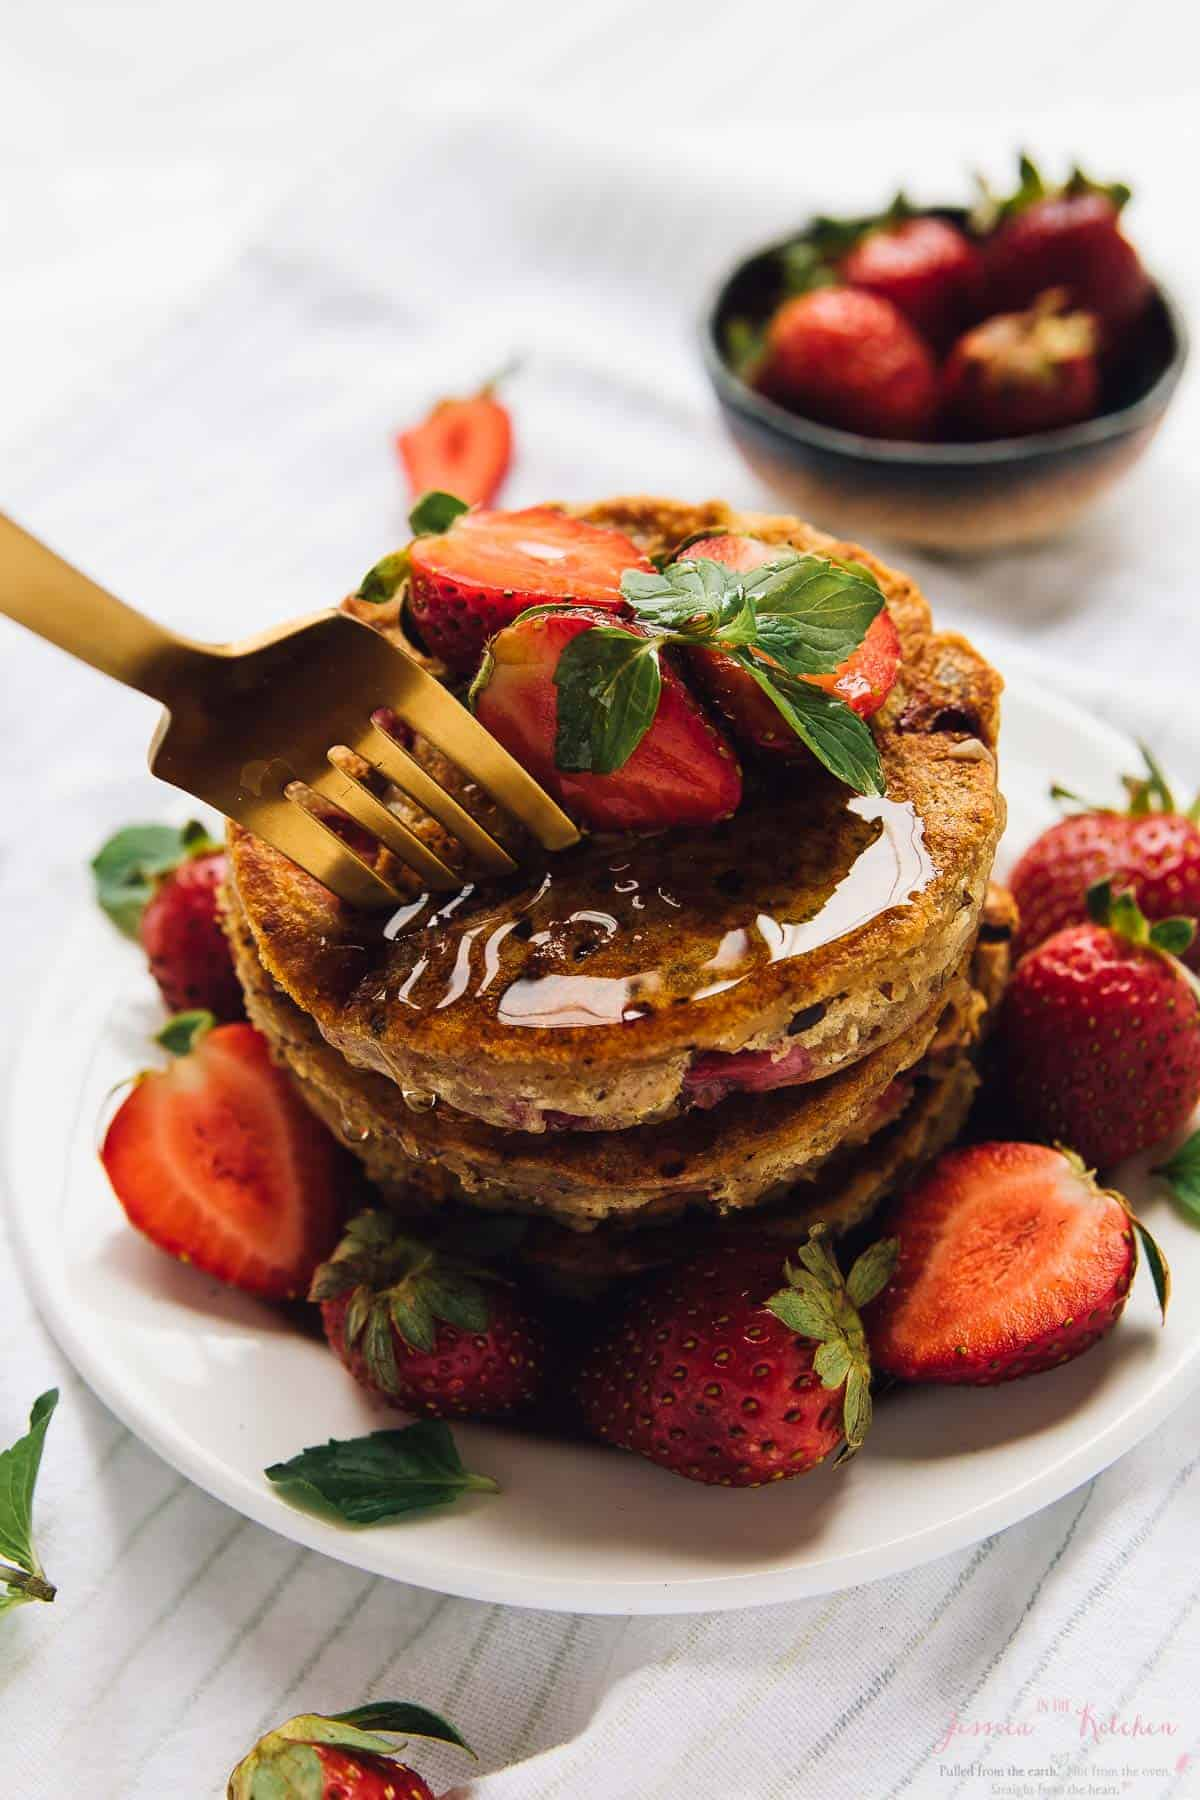 These Fluffy Vegan Strawberry Pancakes are an easy and quick breakfast! They freeze so well, are gluten free and great for meal prep! via https://jessicainthekitchen.com